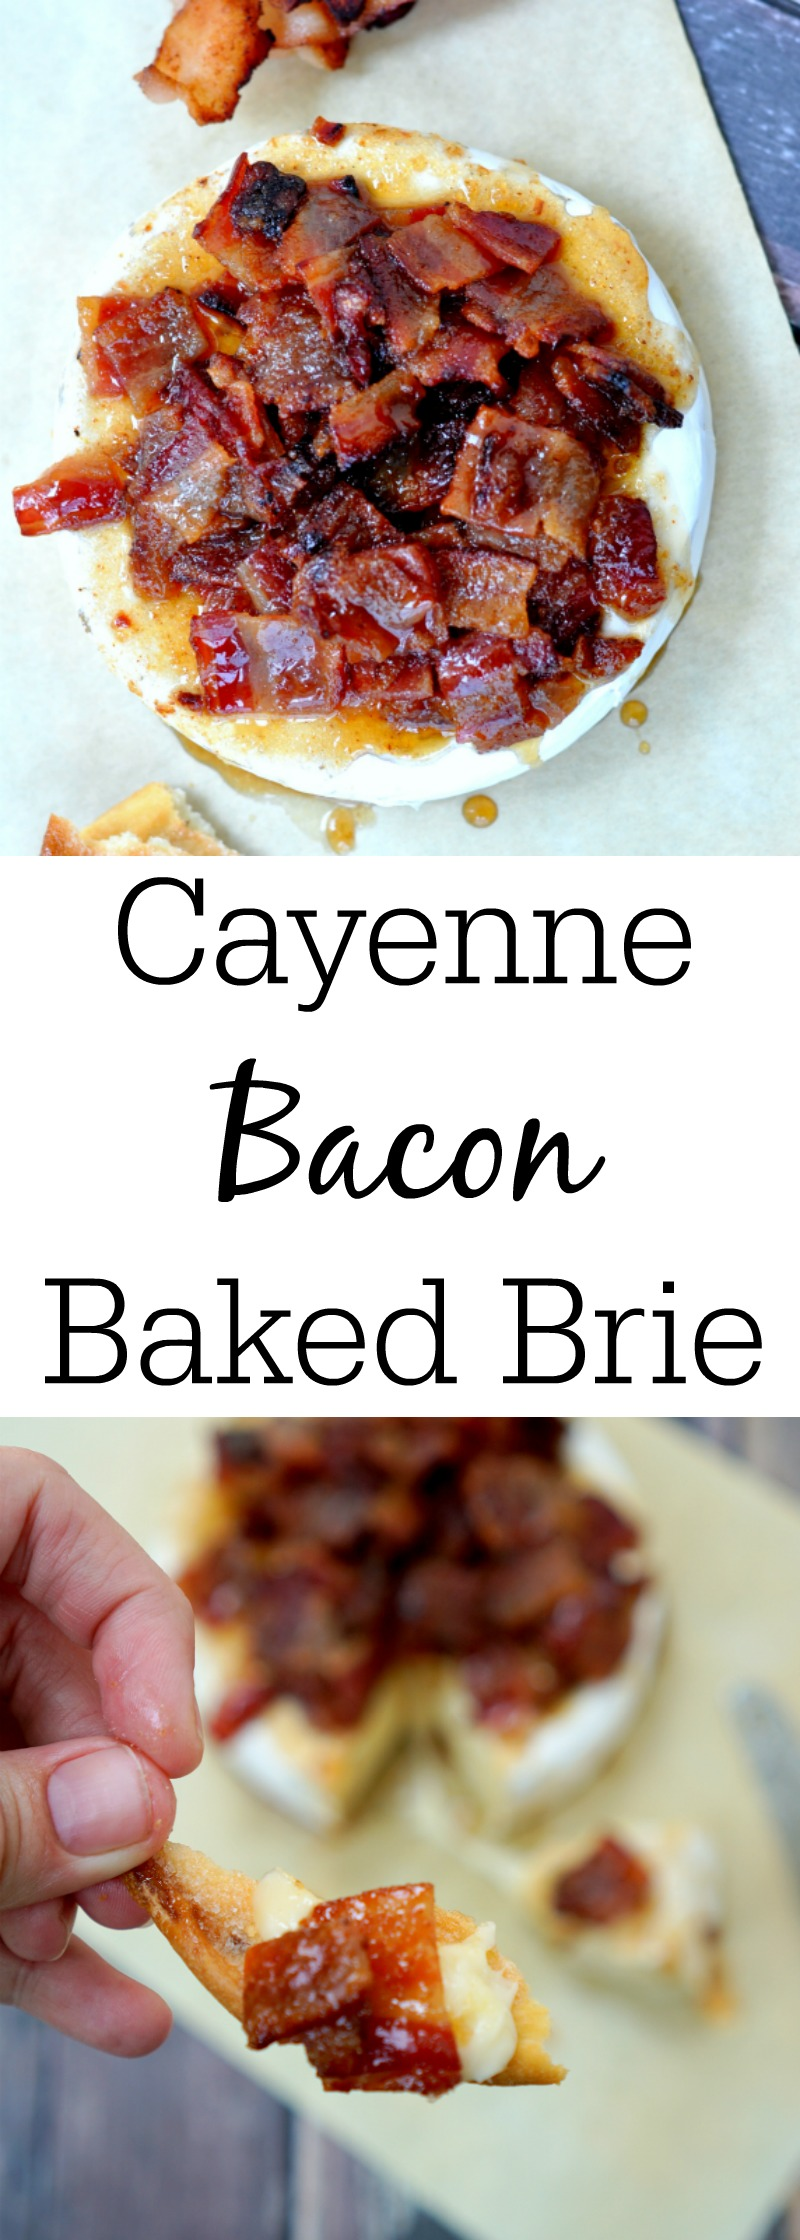 cayenne-candied-bacon-baked-brie